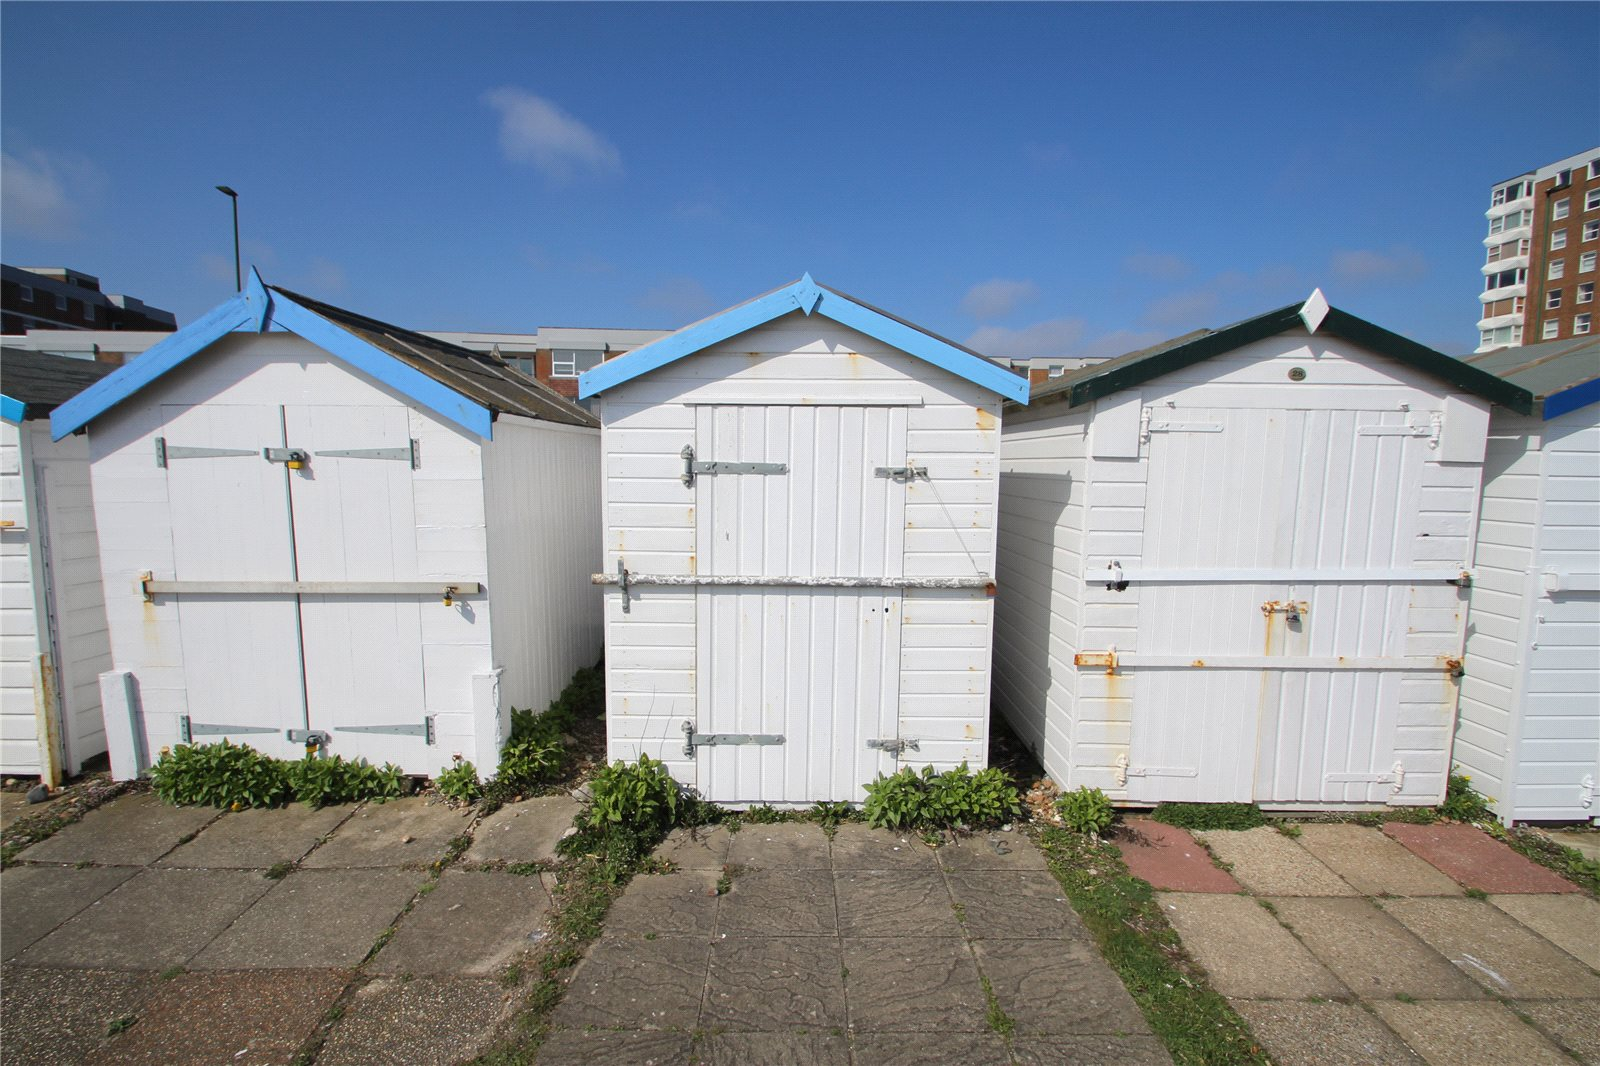 House For Sale Brighton Road Lancing West Sussex South Lancing